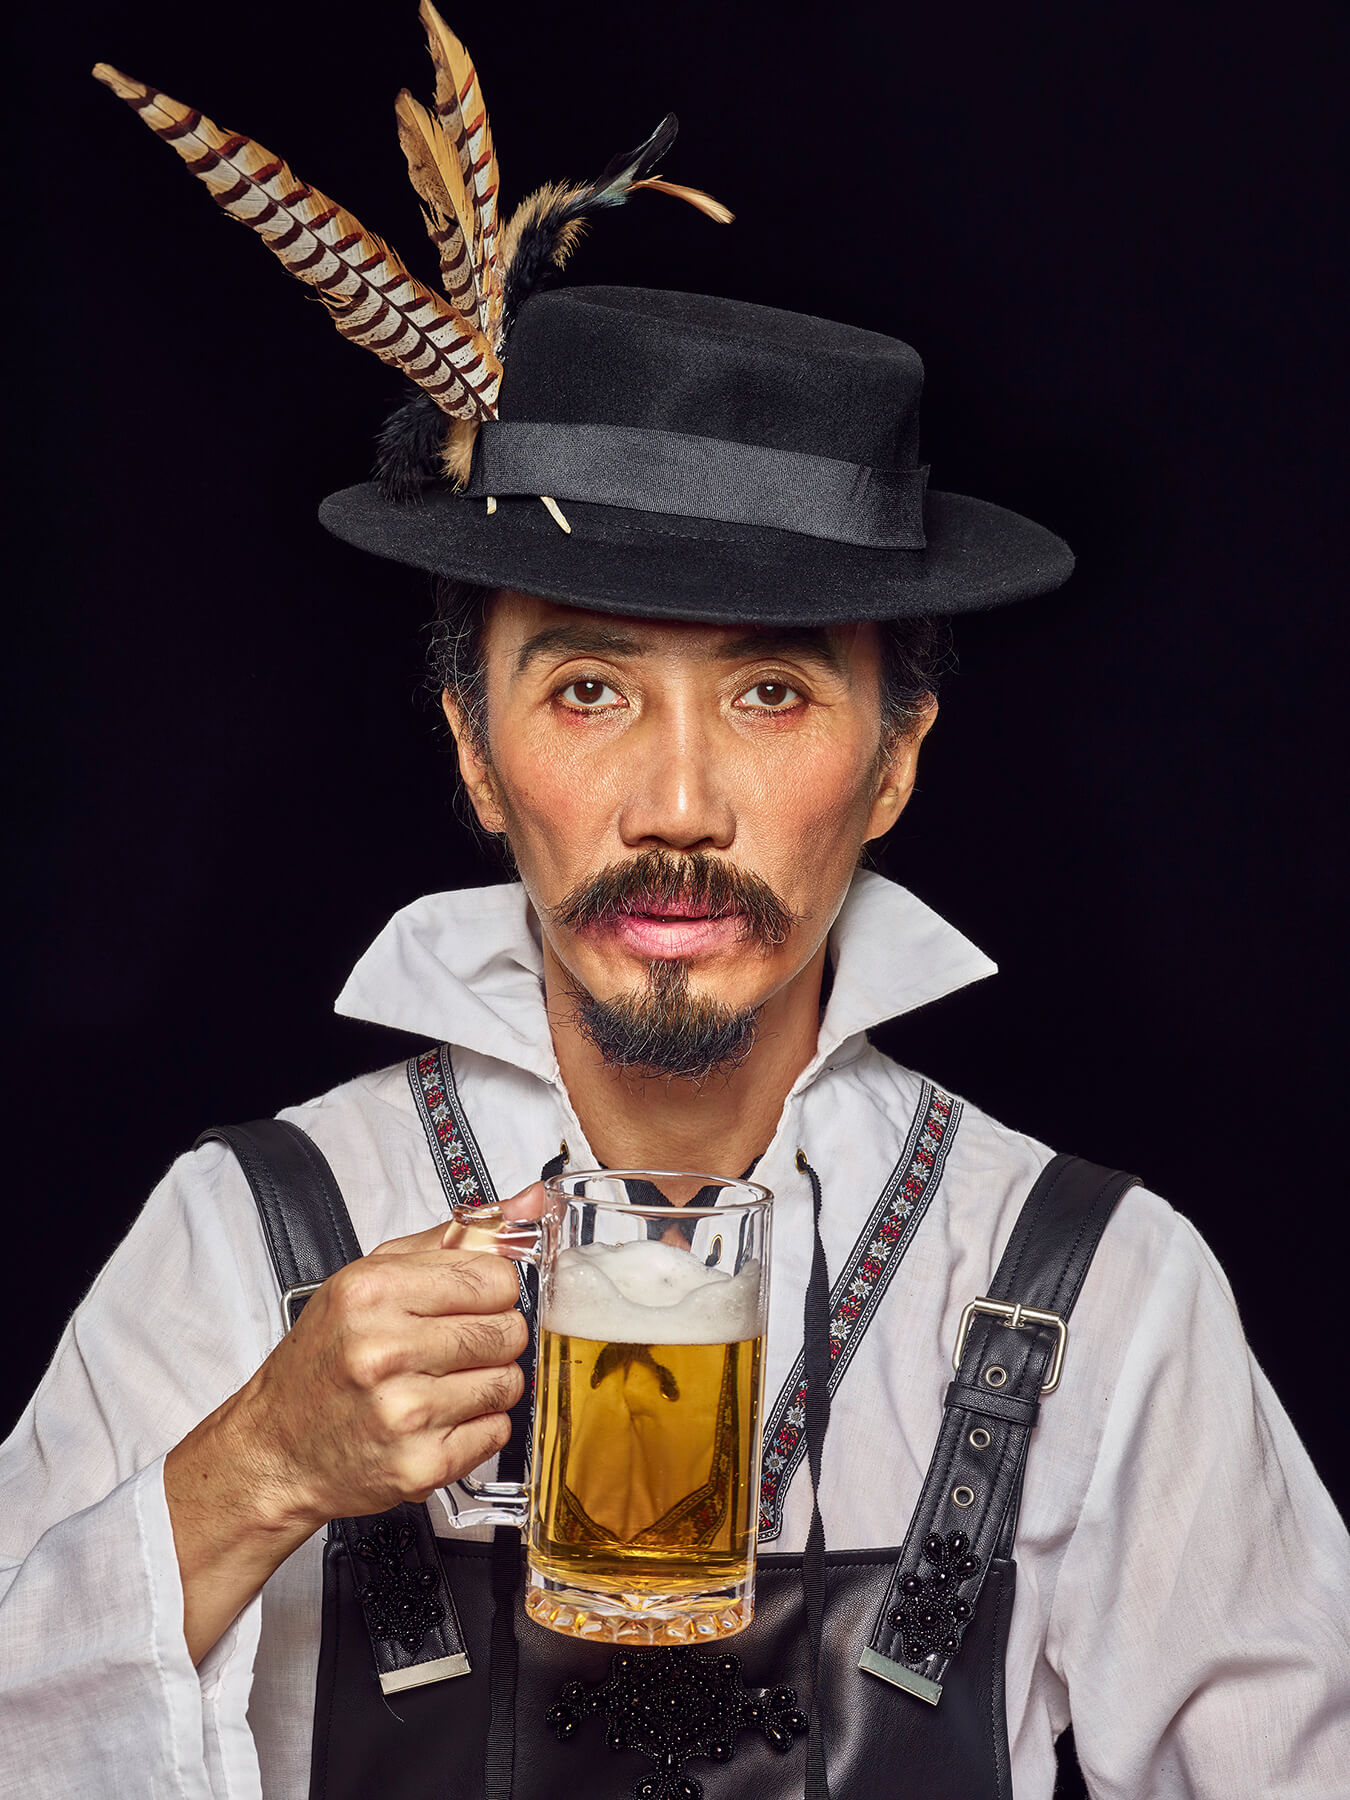 17 Sep 2017: Derong is dressed in traditional oktoberfest costume and holding a beer